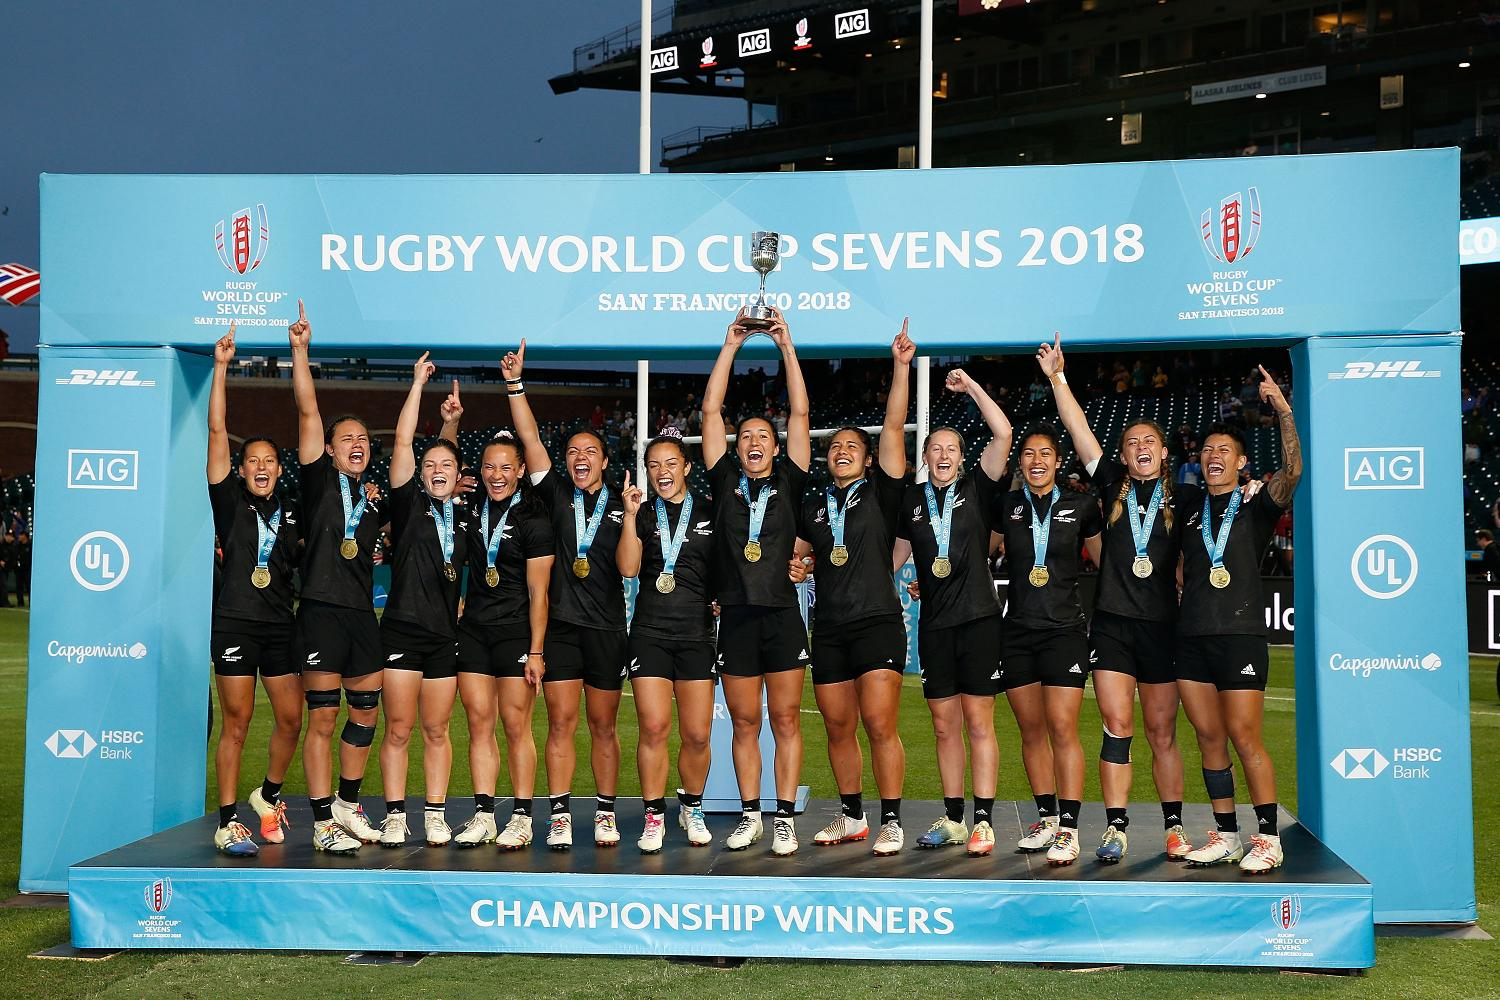 Rugby World Cup Sevens San Francisco 2018 - Day Two